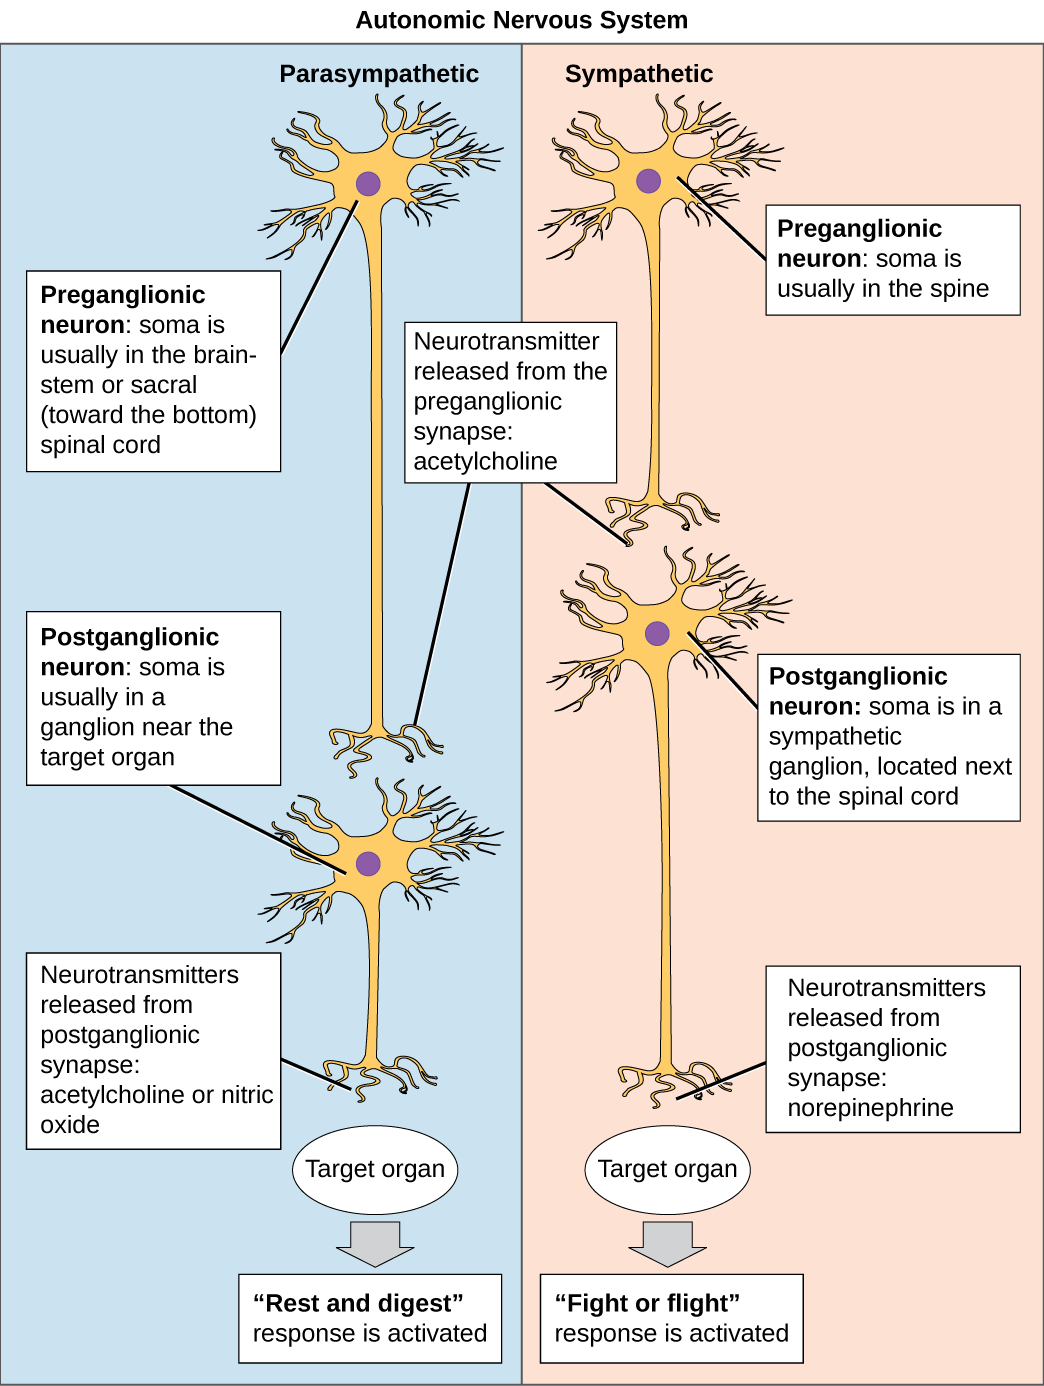 The autonomic nervous system is divided into sympathetic and parasympathetic systems. In the sympathetic system, the soma of the preganglionic neurons is usually located in the spine while in the parasympathetic system the soma is usually in the brainstem or sacral, at the bottom of the spine. In both systems, the preganglionic neuron releases the neurotransmitter acetylcholine into the synapse. Postganglionic neurons of the sympathetic system have somas in a sympathetic ganglion, located next to the spinal cord. Postganglionic neurons of the parasympathetic system have somas in ganglions near the target organ. Postganglionic neurons of the sympathetic system release norepinephrine into the synapse, in which the fight or flight response is activated; while postganglionic neurons of the parasympathetic system release acetylcholine or nitric oxide, in which the rest and digest response is activated.